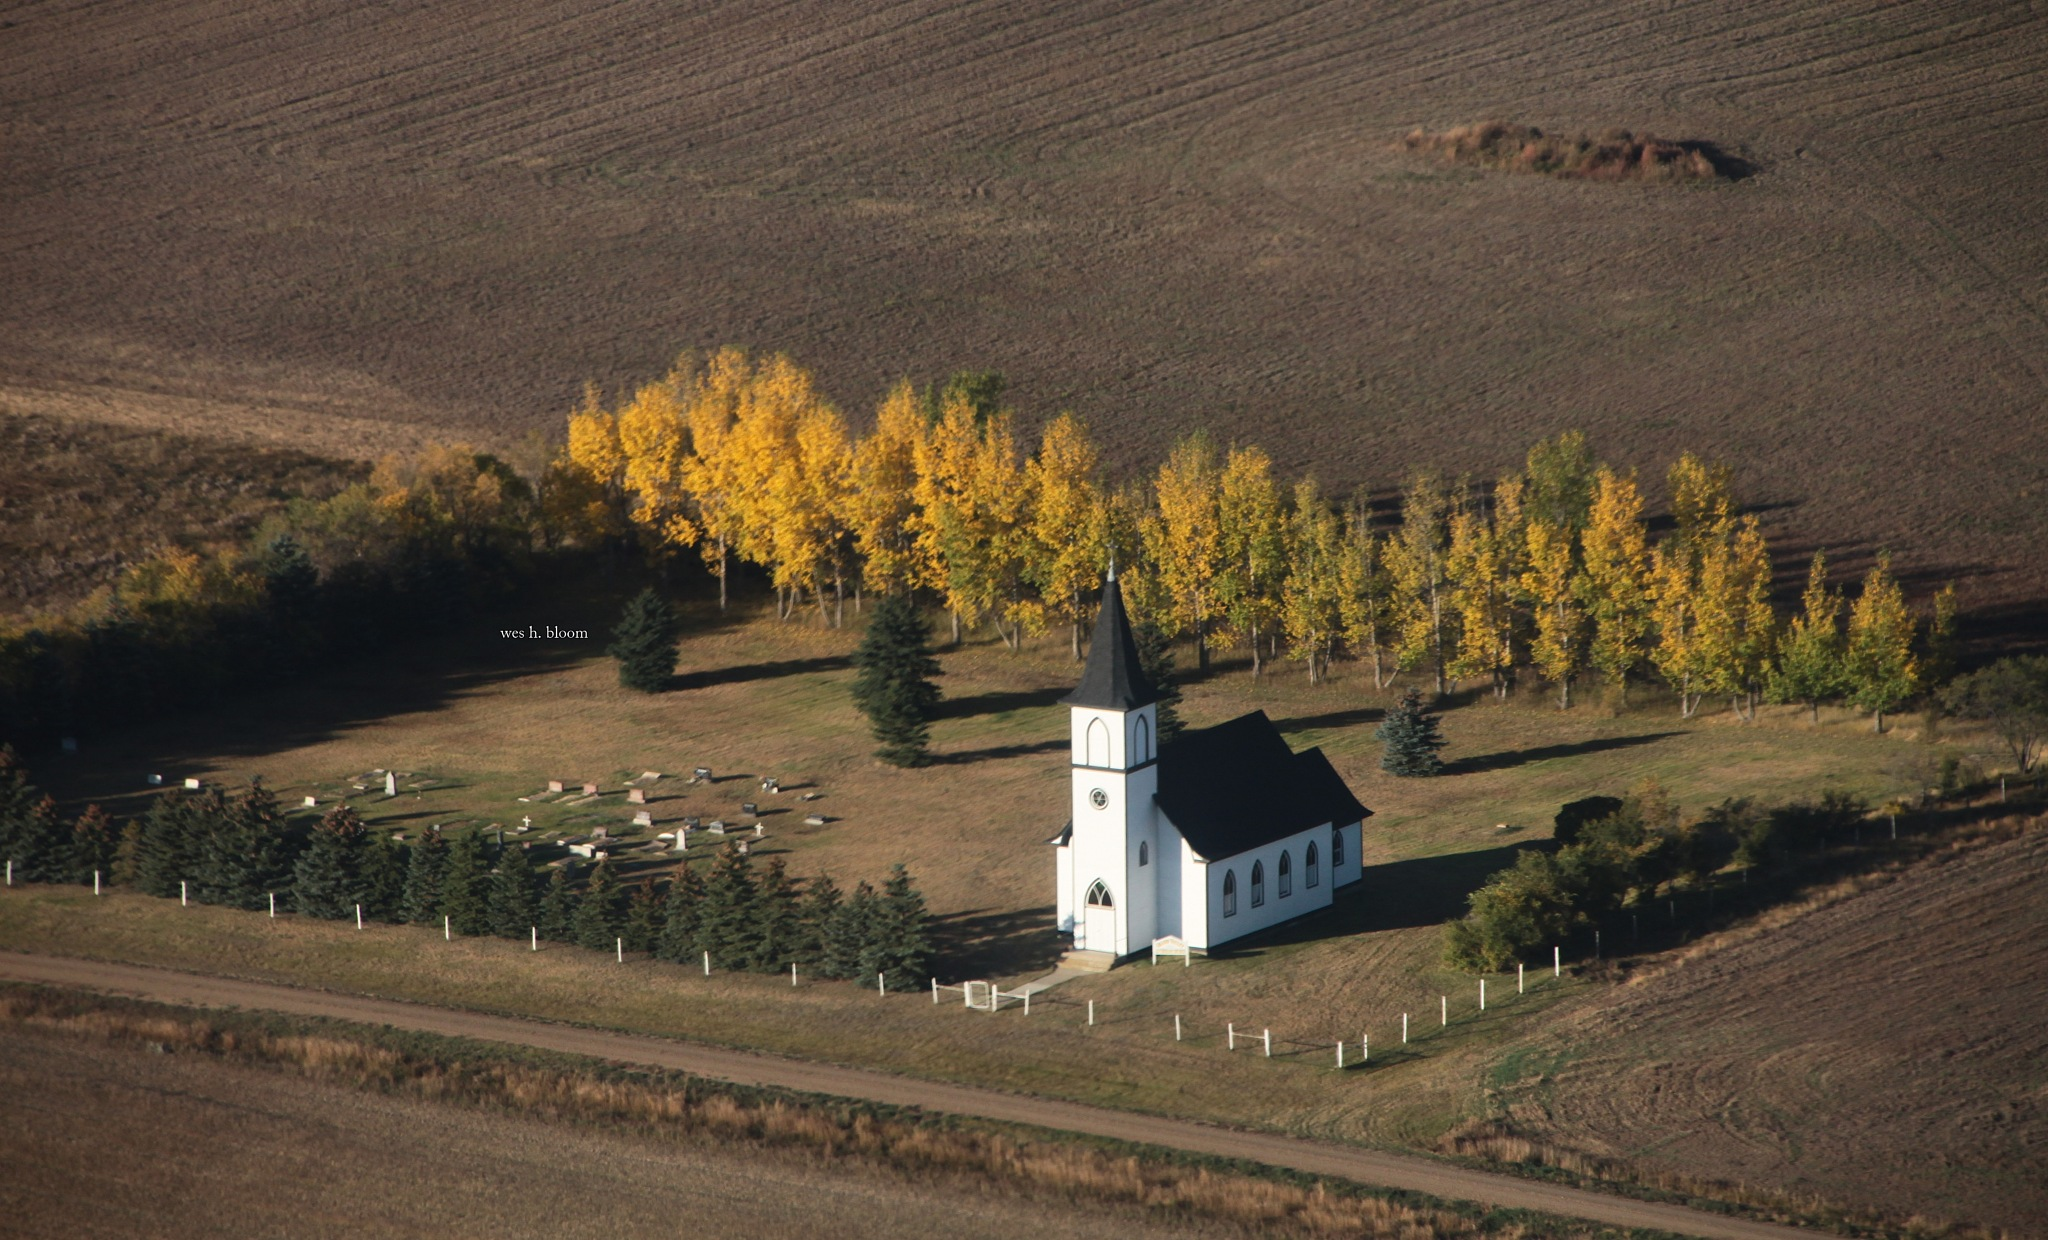 GRAND VALLEY CHURCH by Wes Bloom